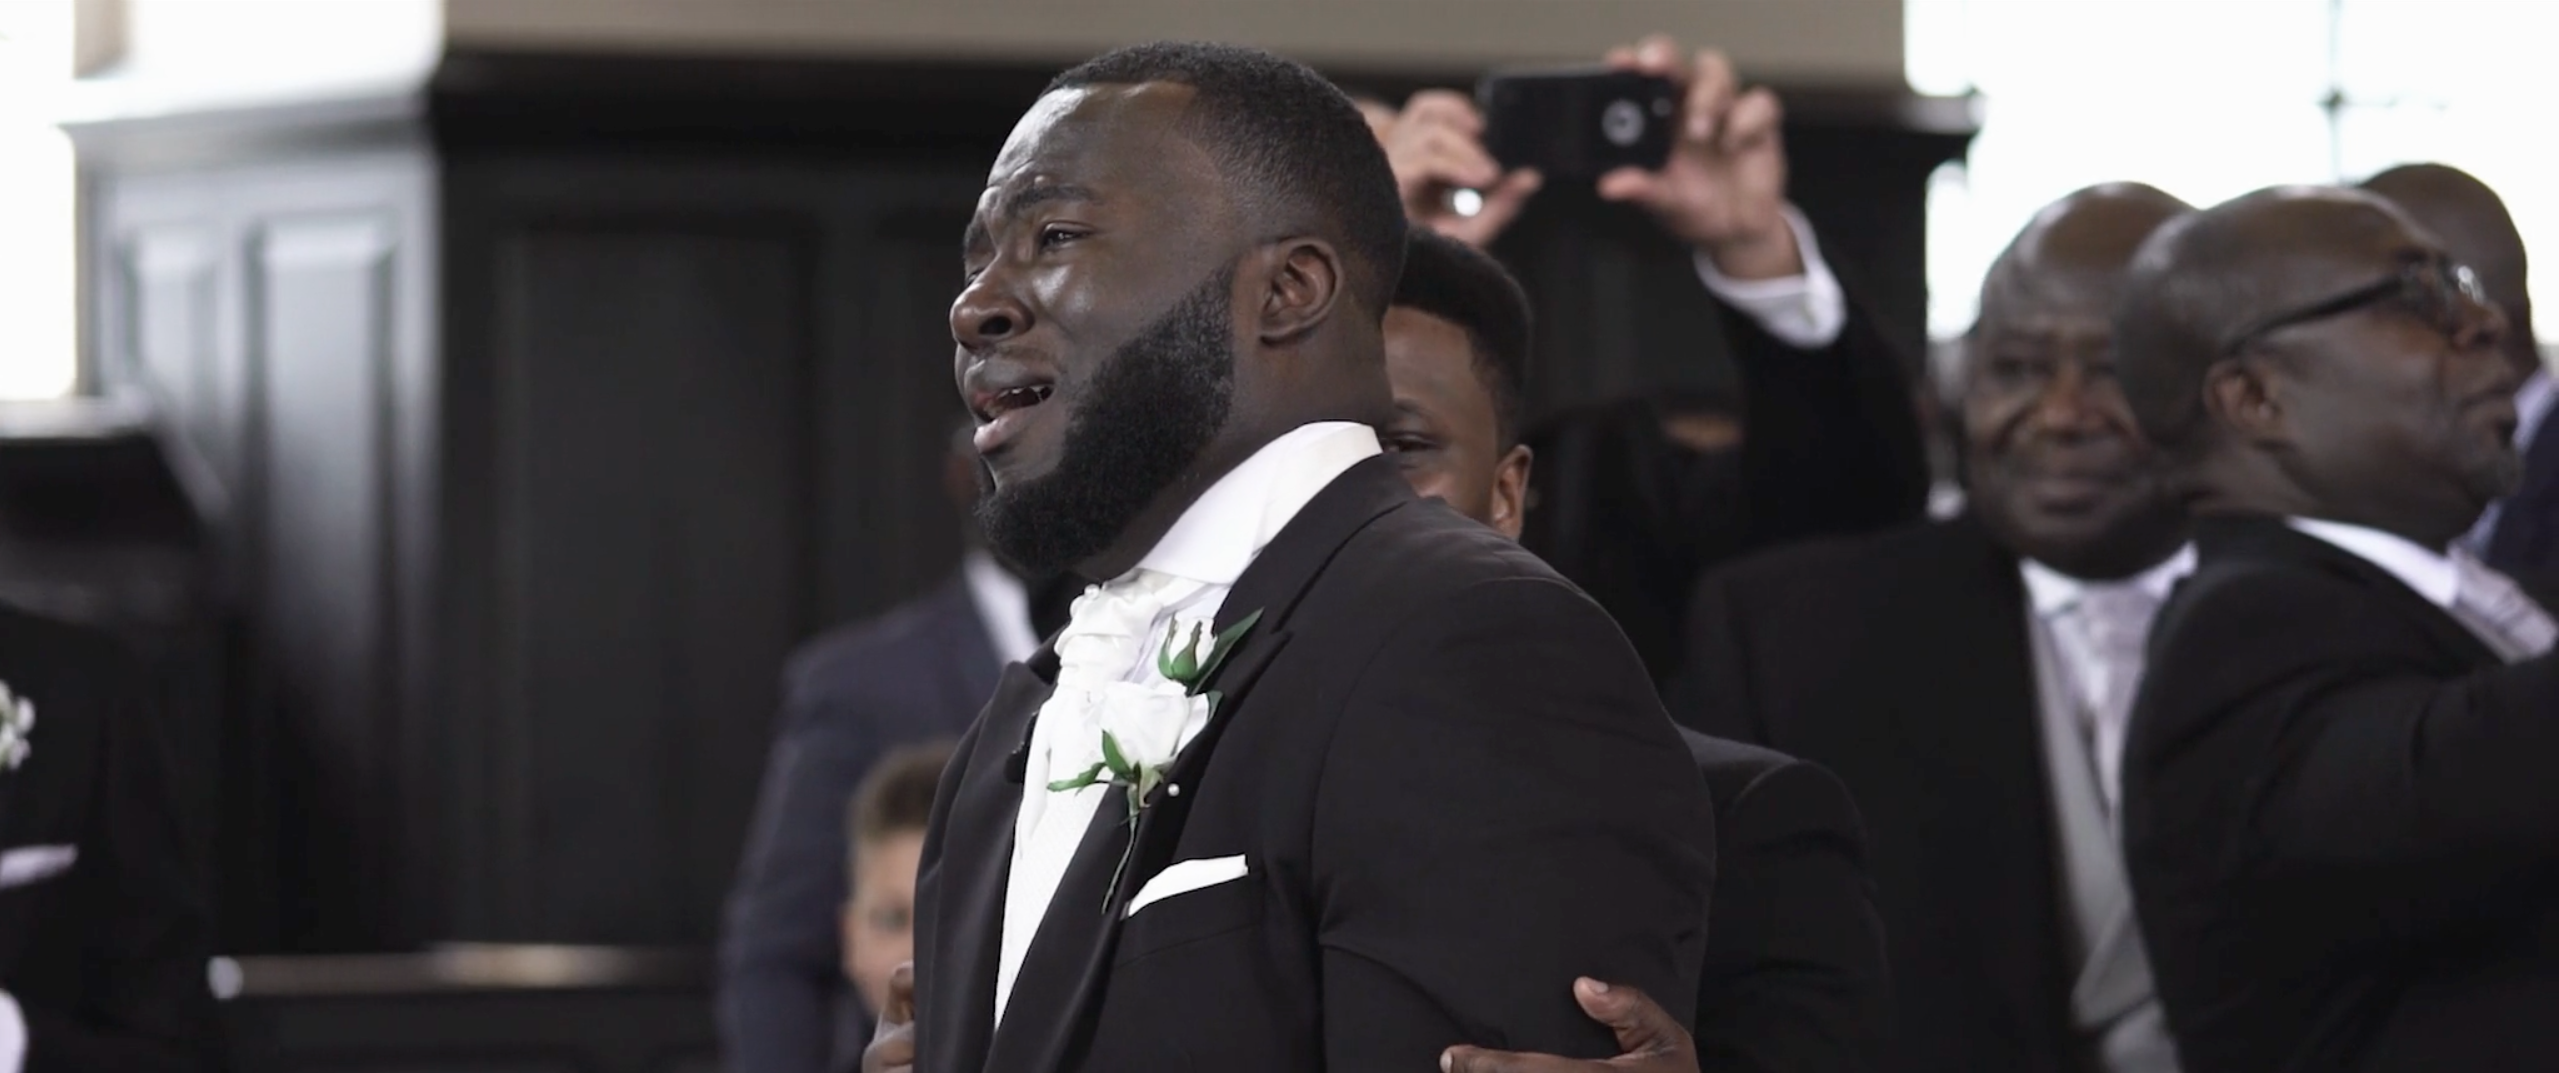 This Video Of A Crying And Emotional Groom Still Warms Our